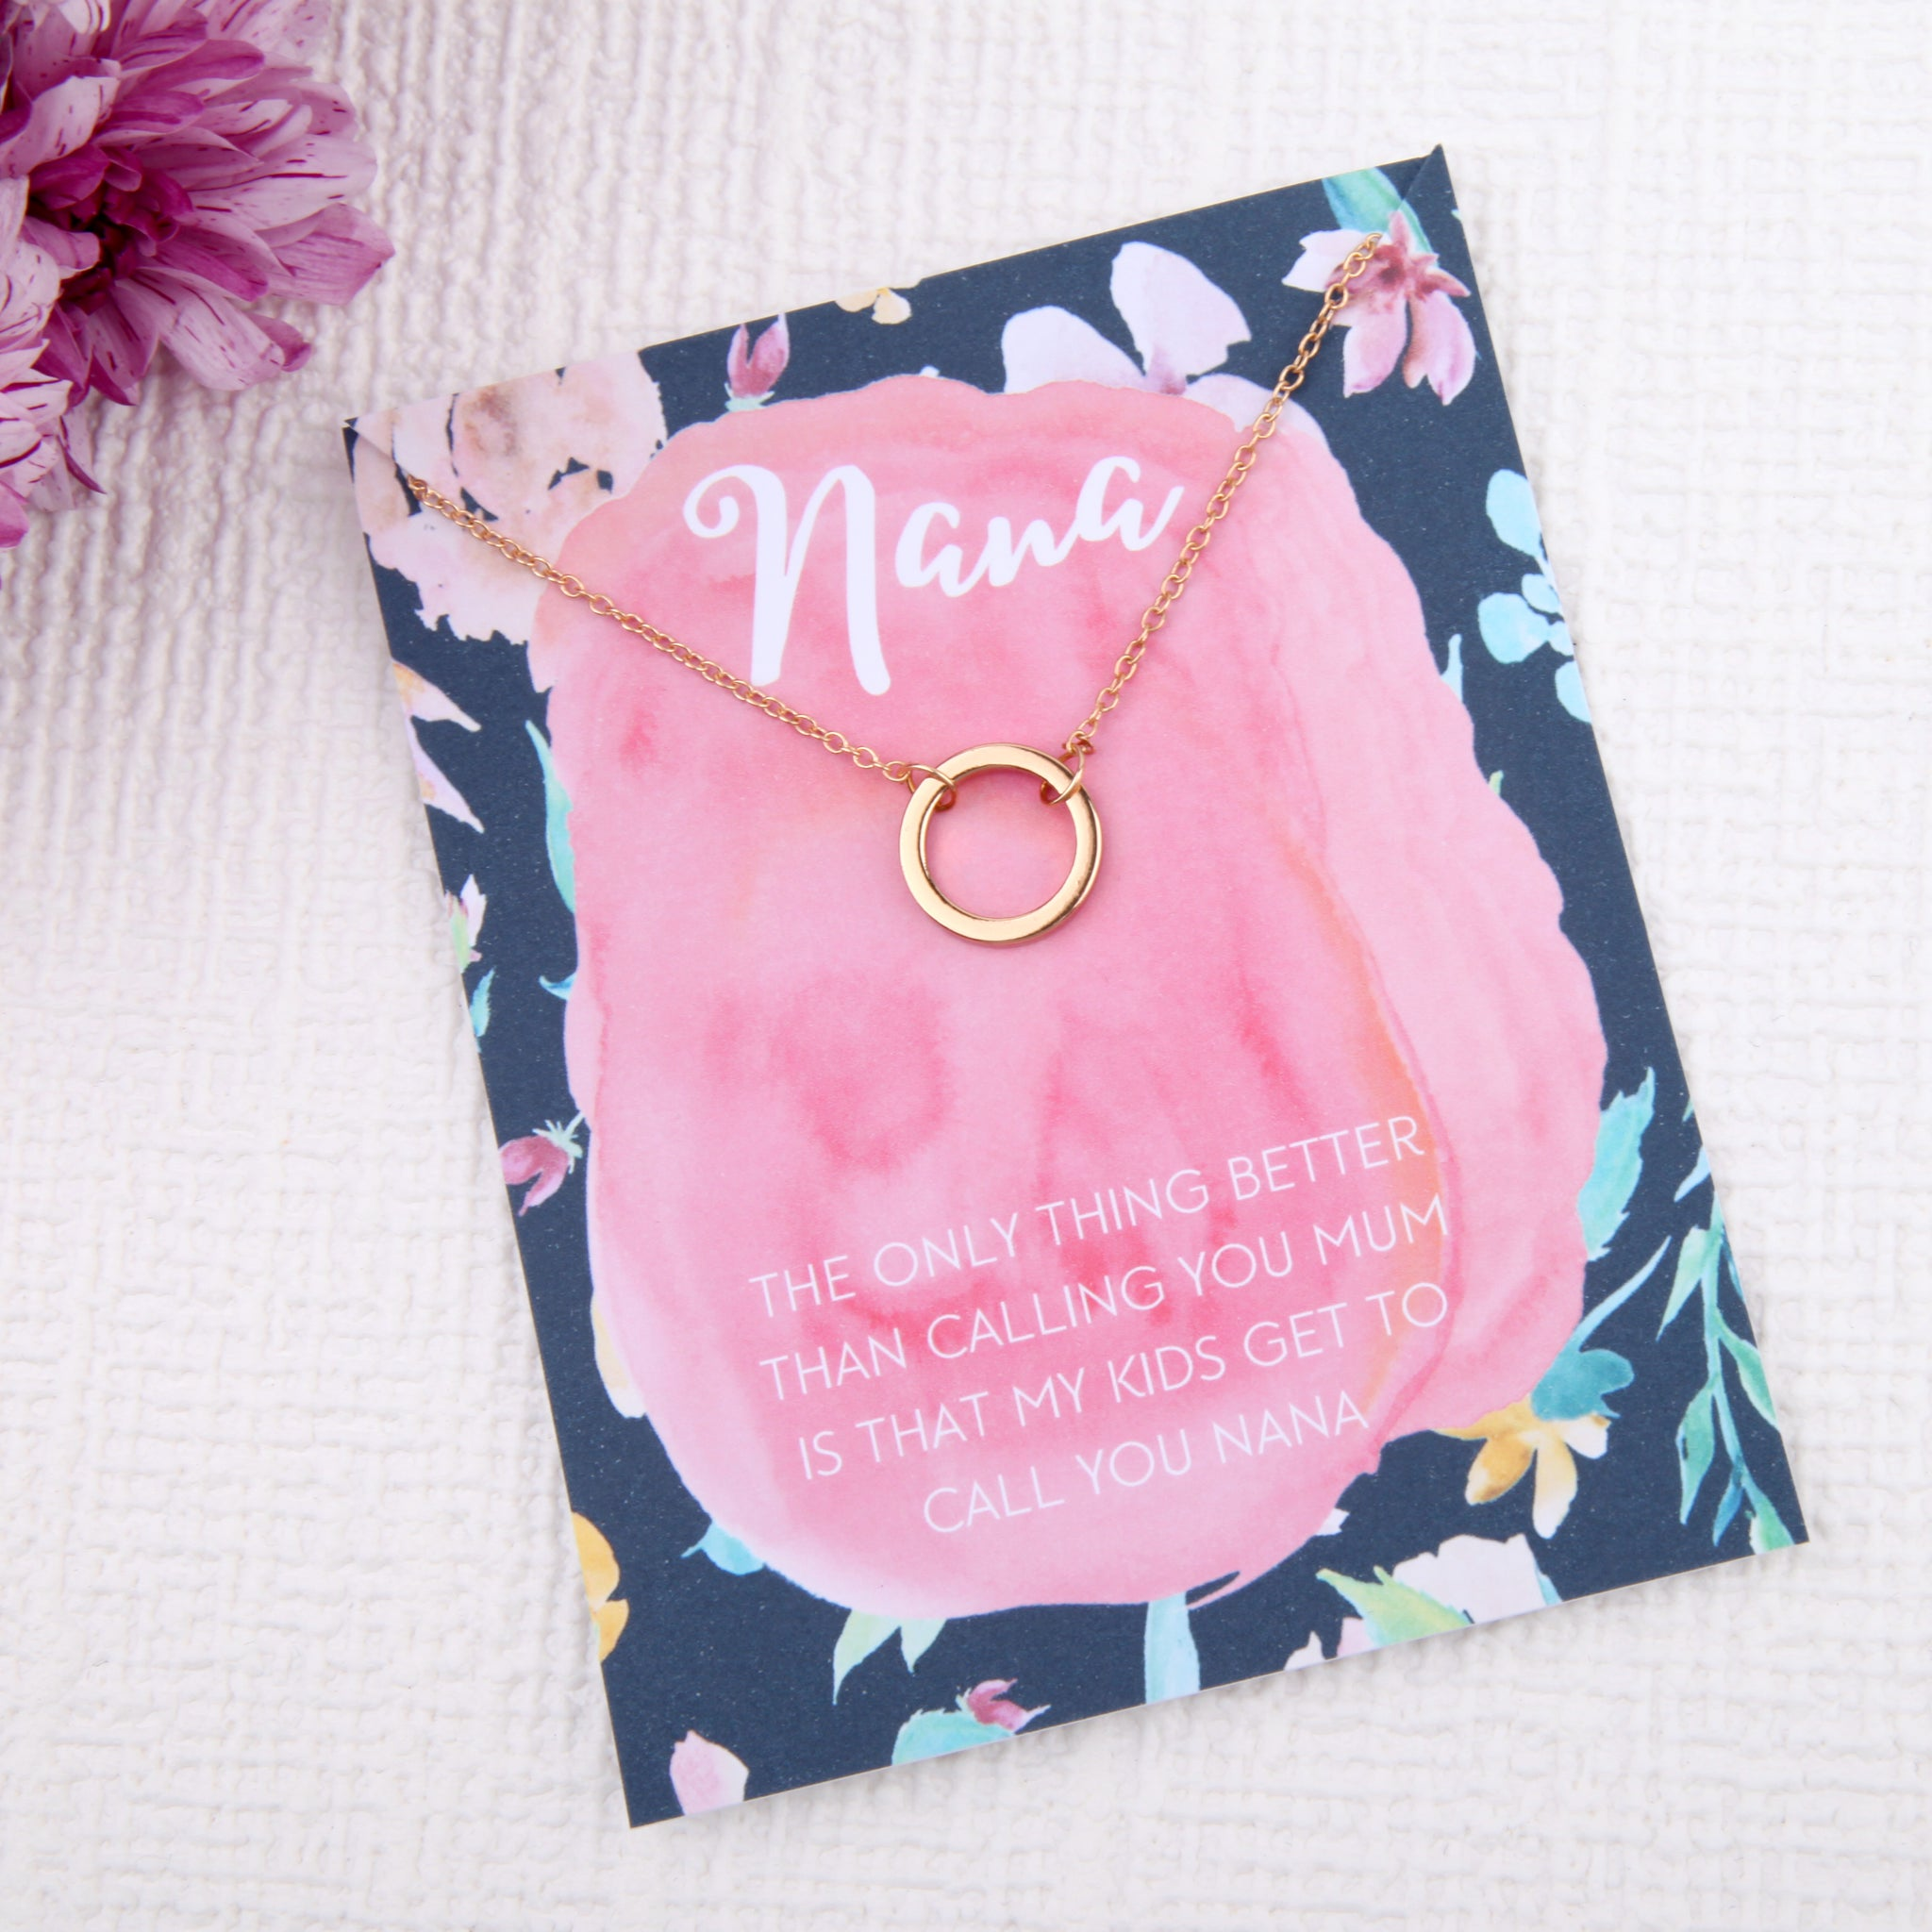 Nana grandma grandmother gifts circles message card necklace - Statement Made Jewellery